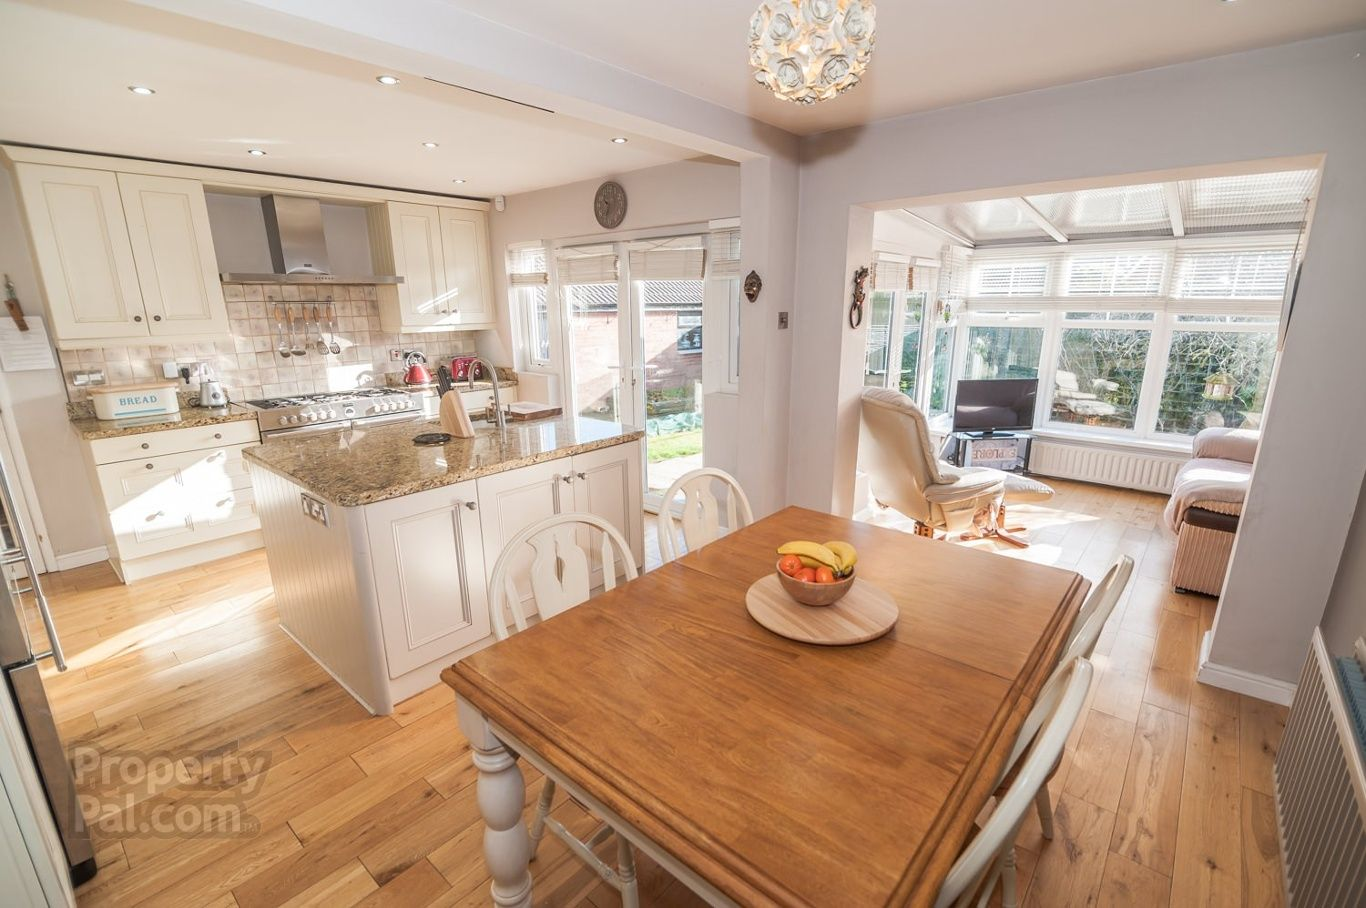 1 Kenbrooke Crescent, Bangor | Kitchens | Pinterest